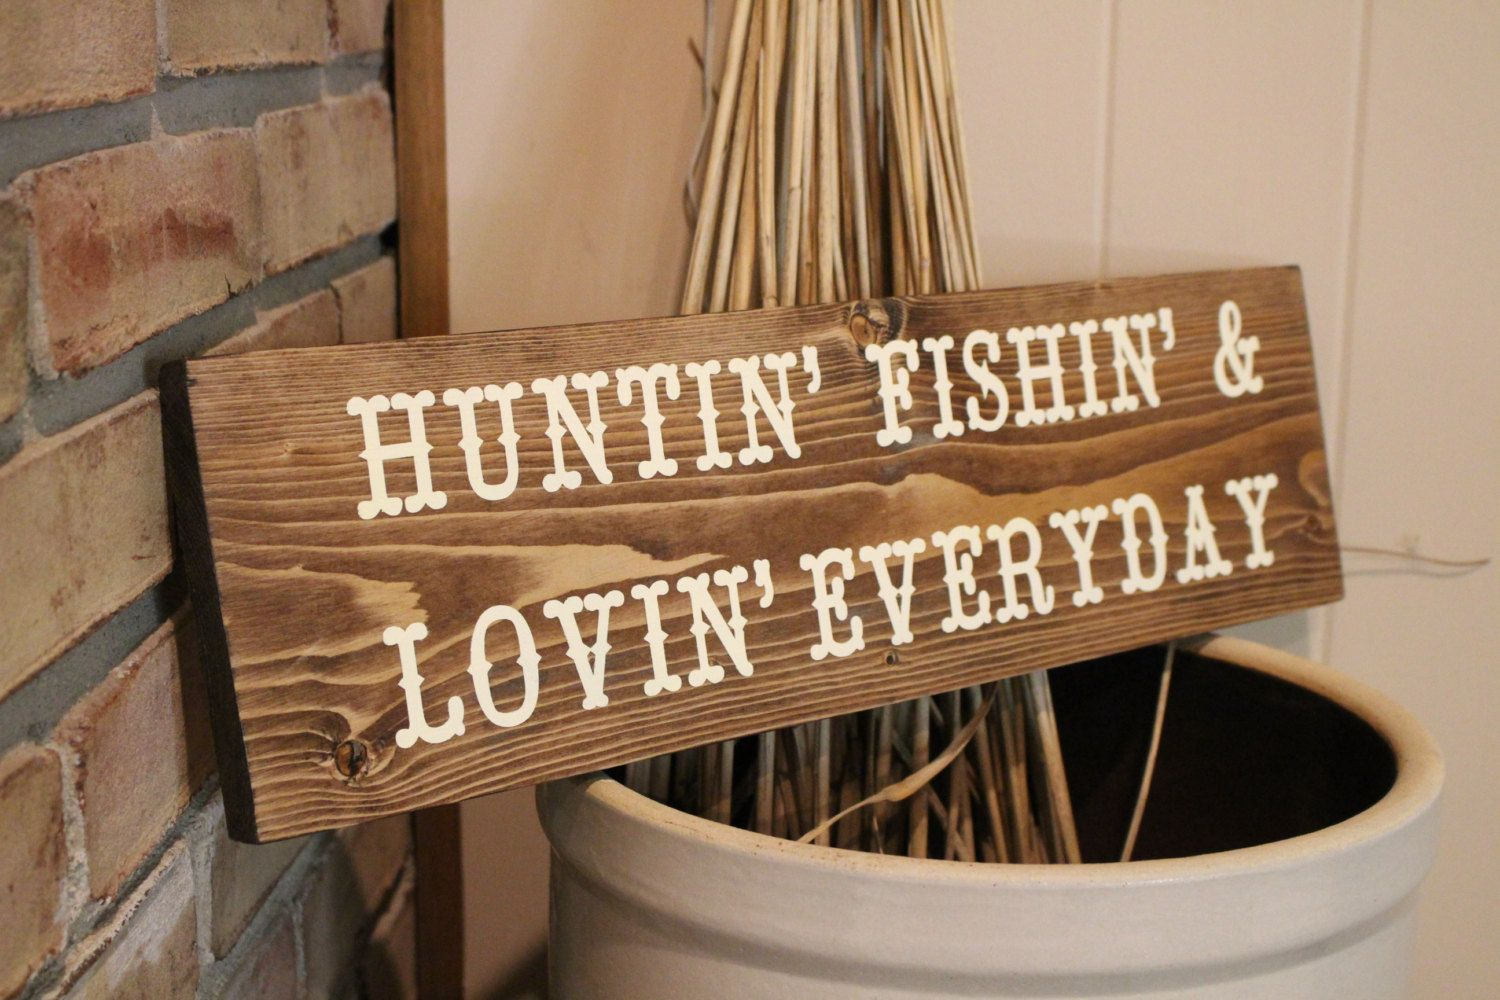 Hunters Man Cave Signs : Hunting fishing wood sign rustic decor cabin home